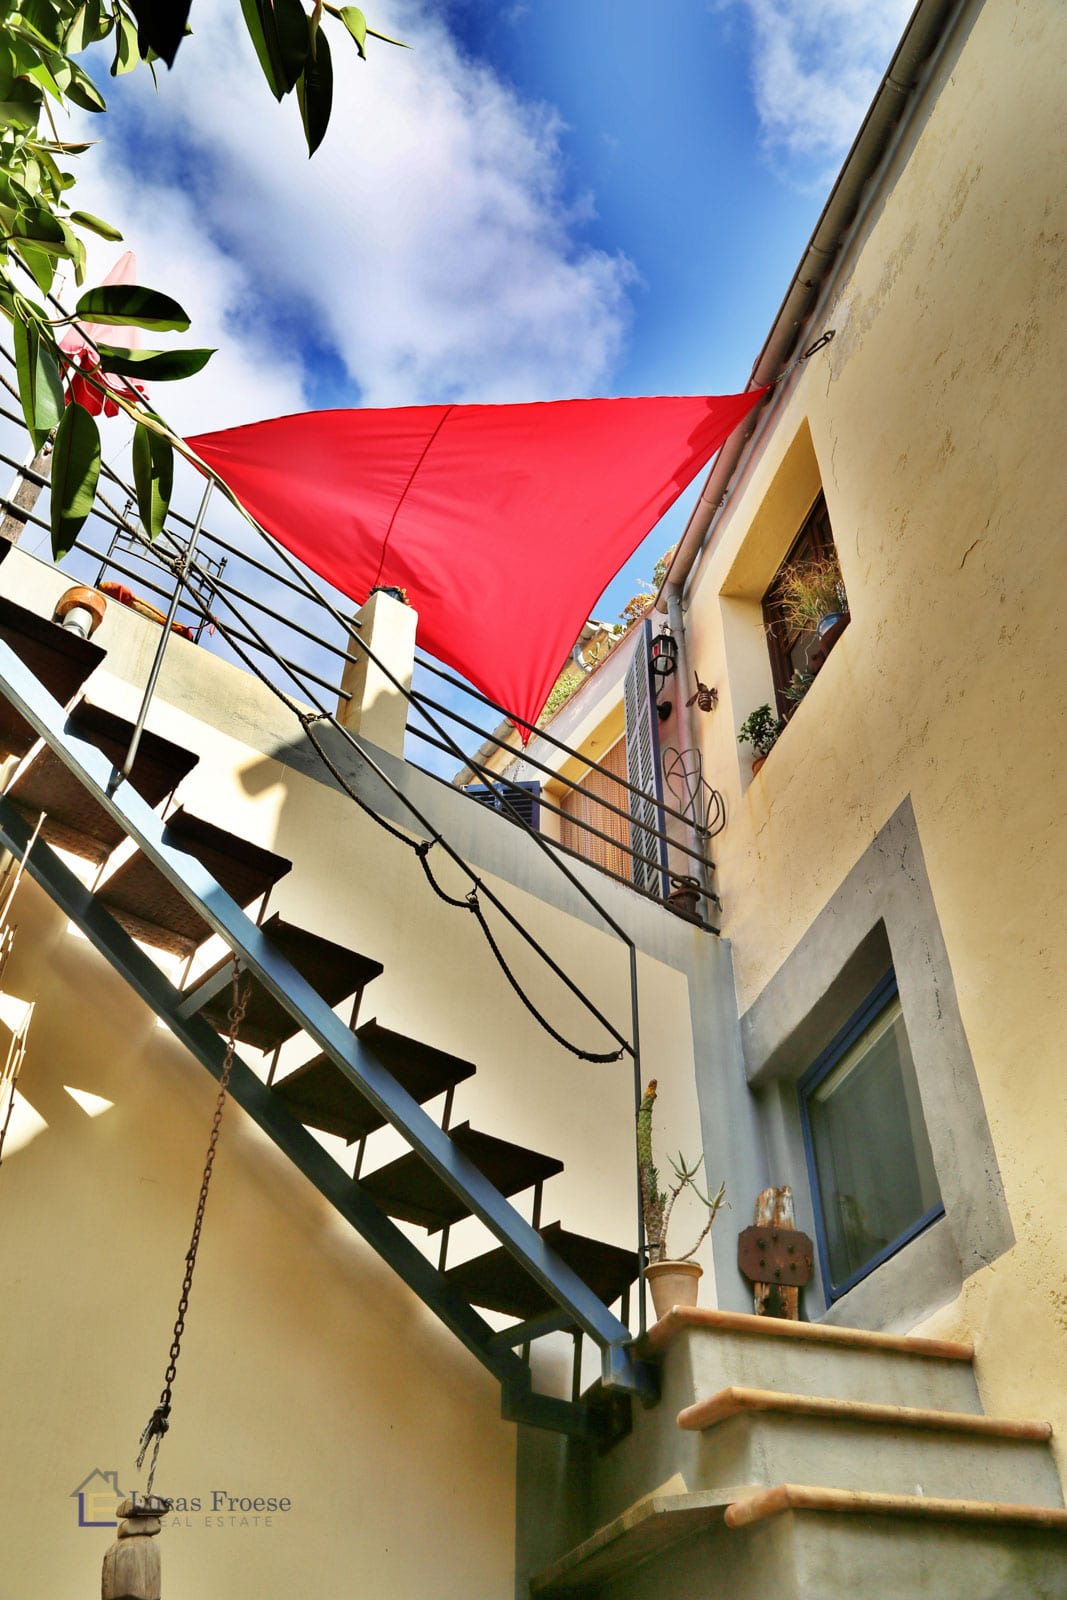 Renovated townhouse with many terraces in Felanitx